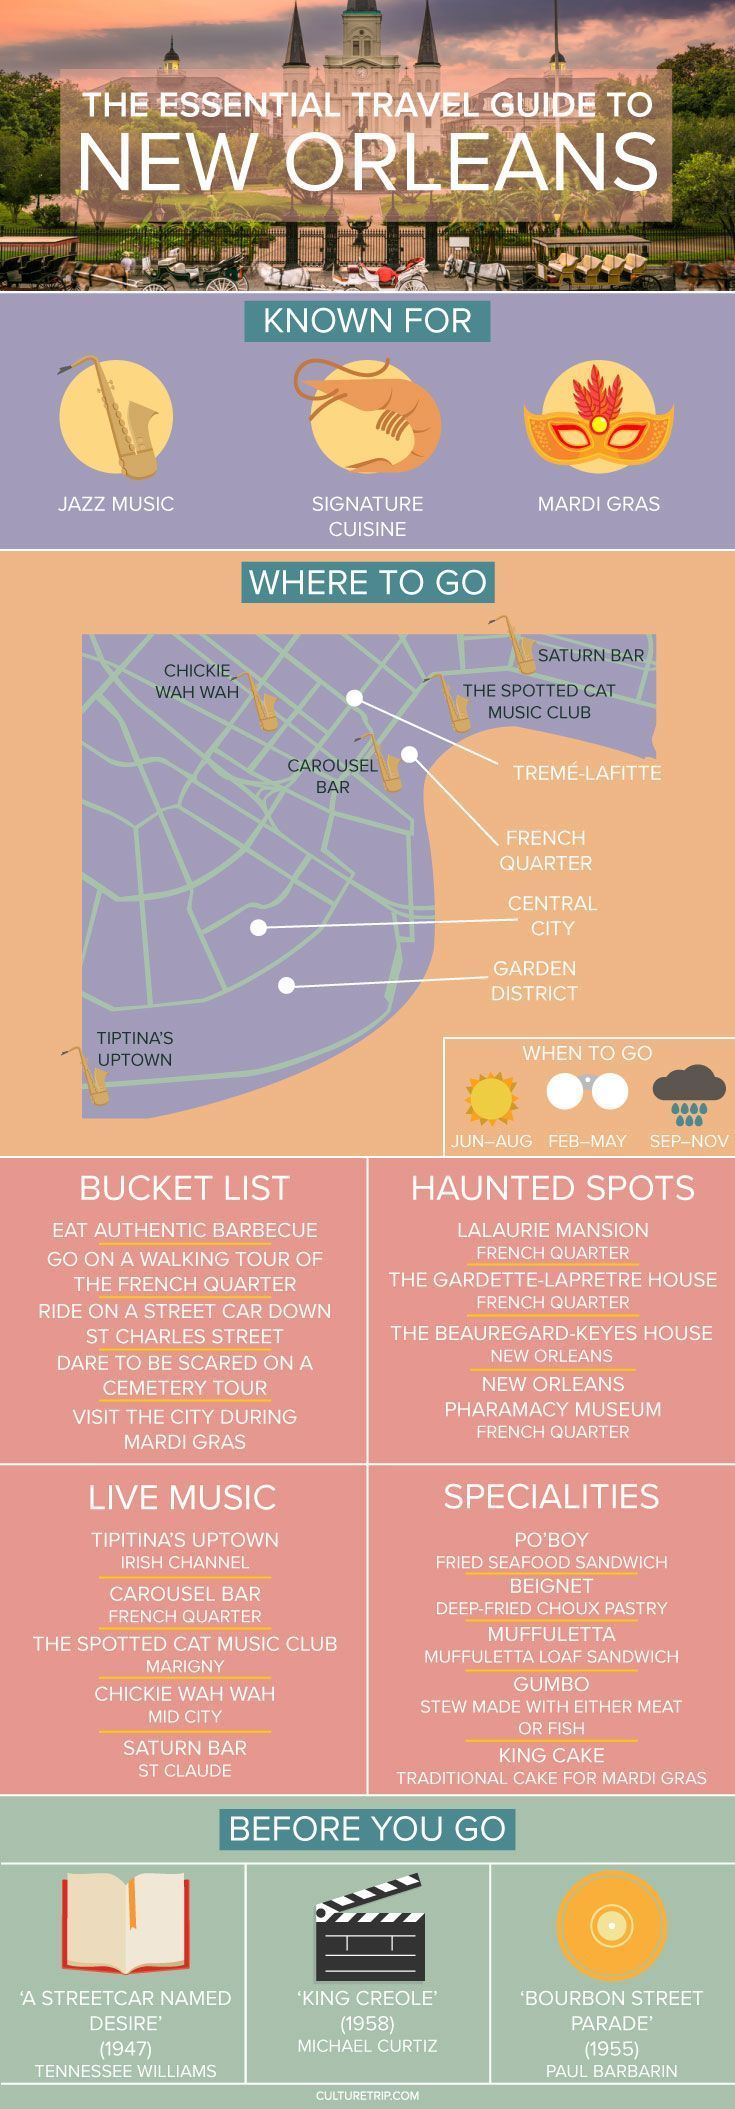 The Essential Travel Guide to New Orleans (Infographic) | Pinterest: @theculturetrip